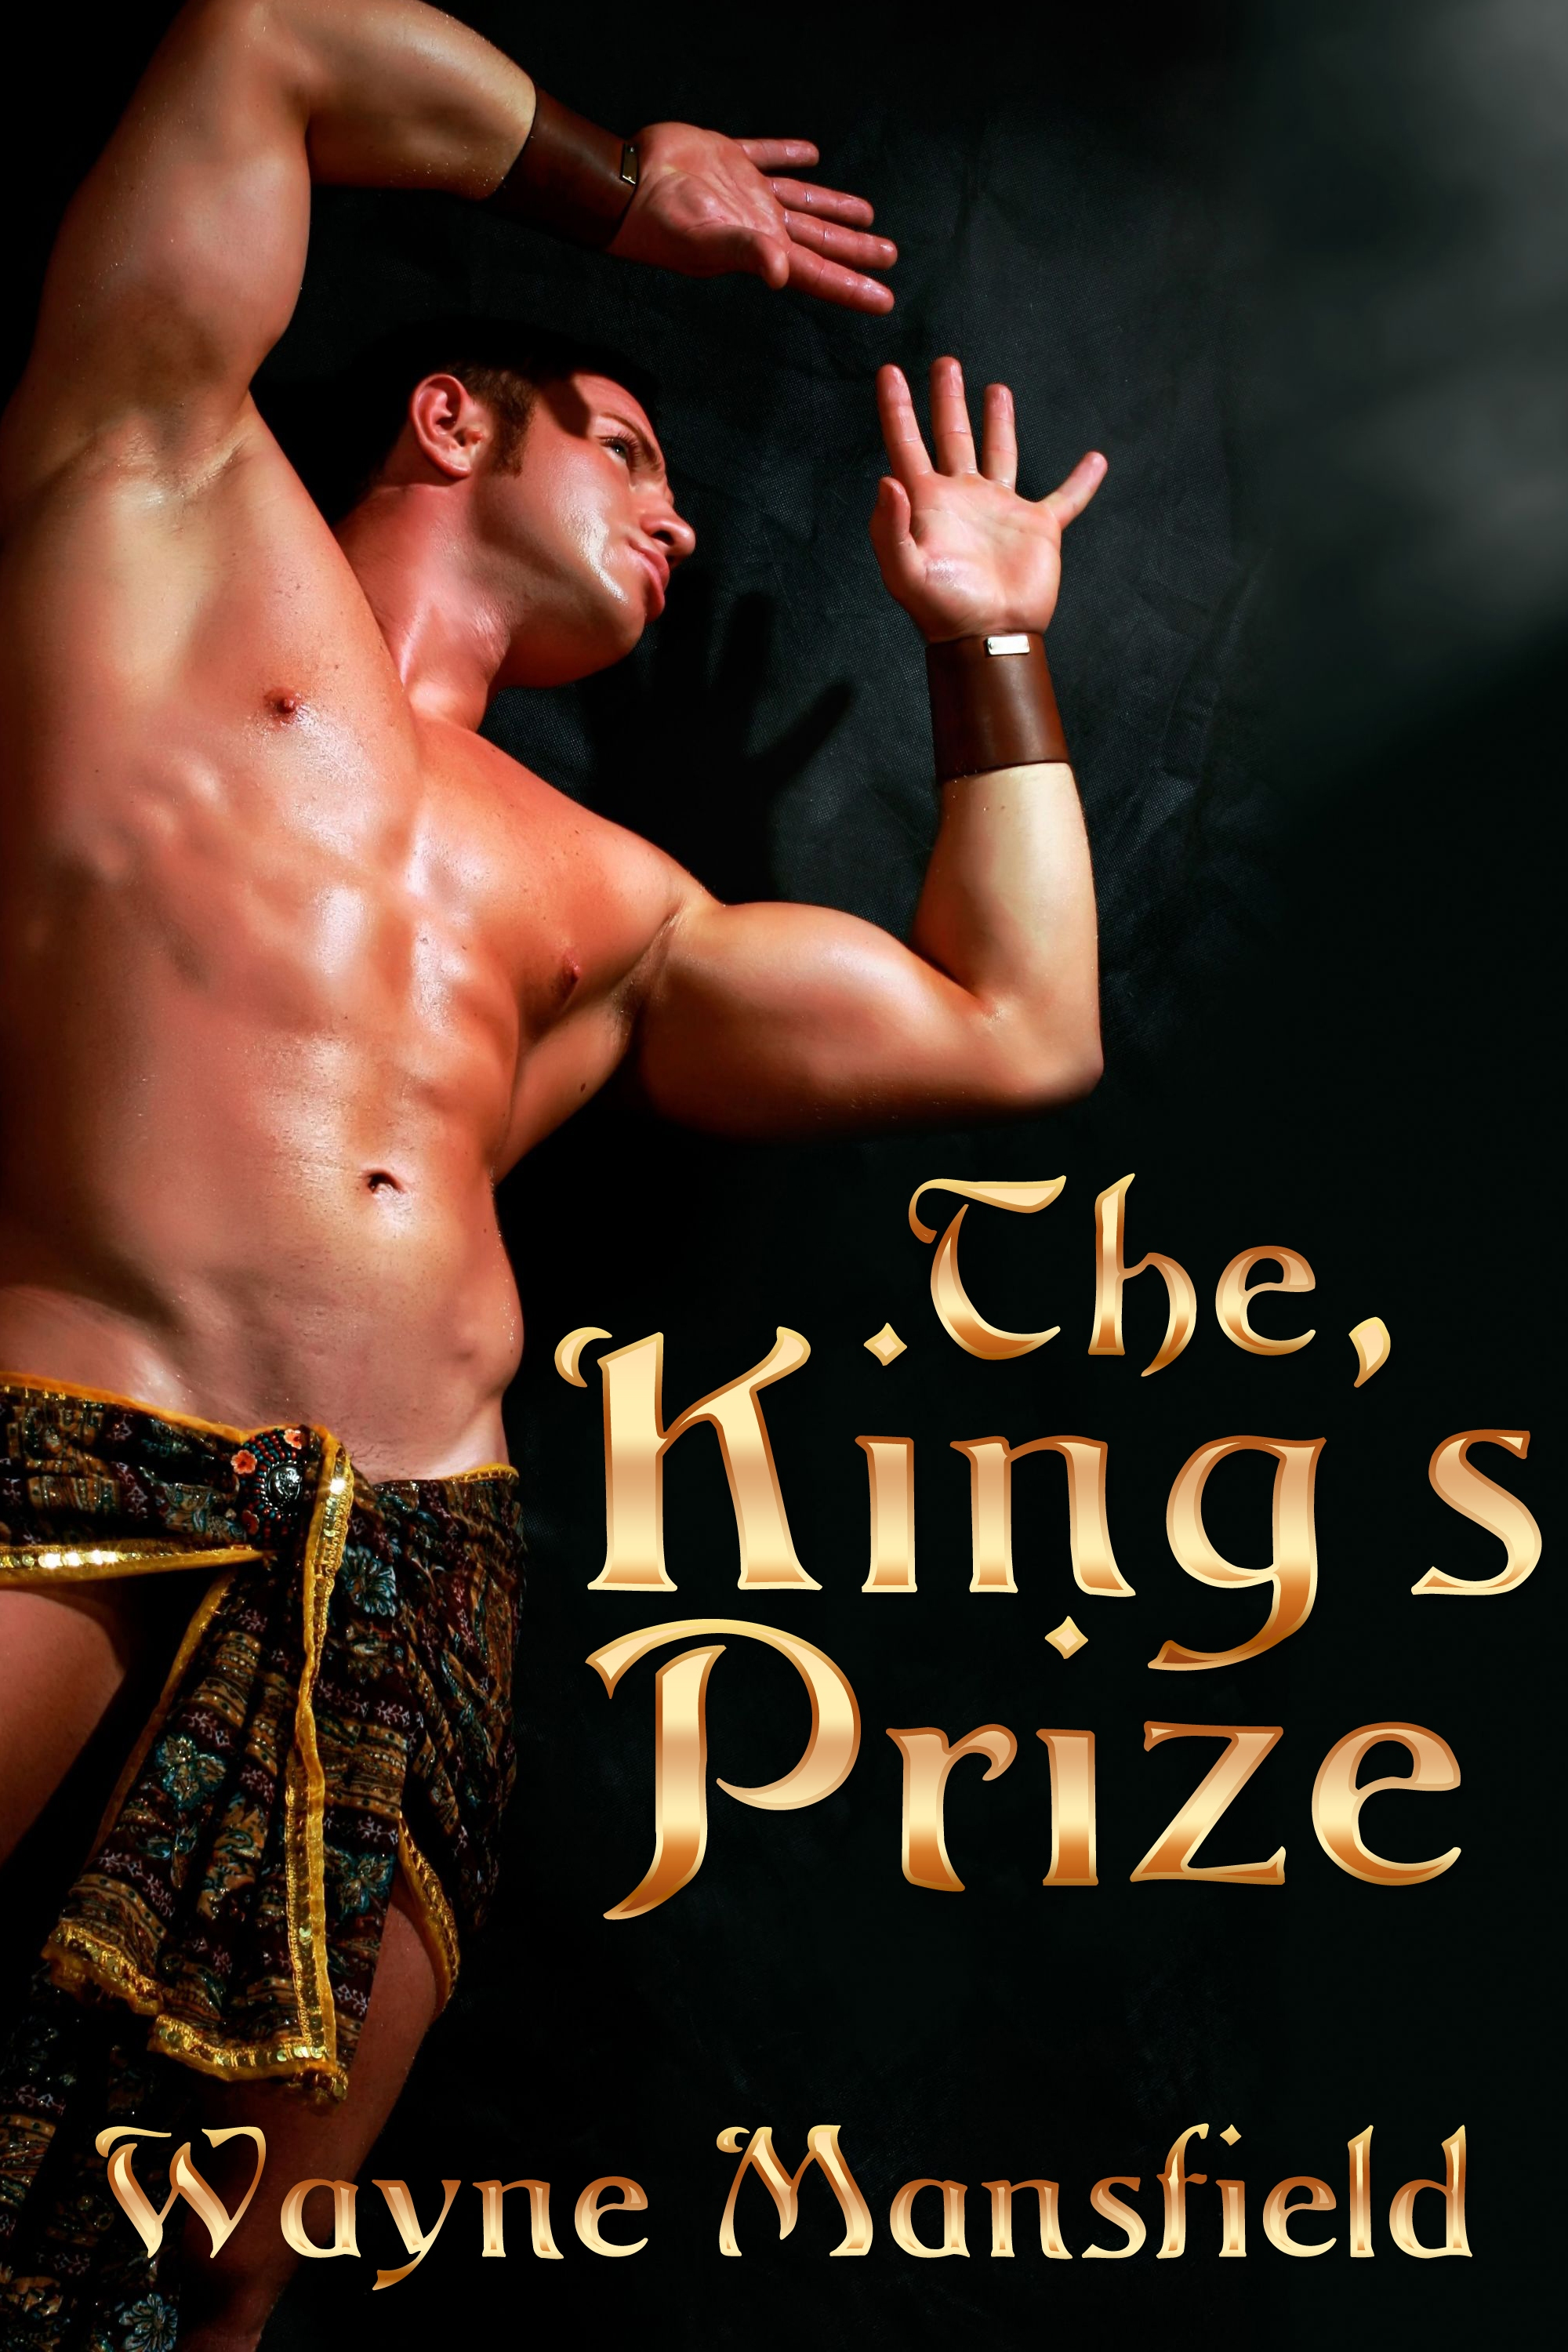 The King's Prize